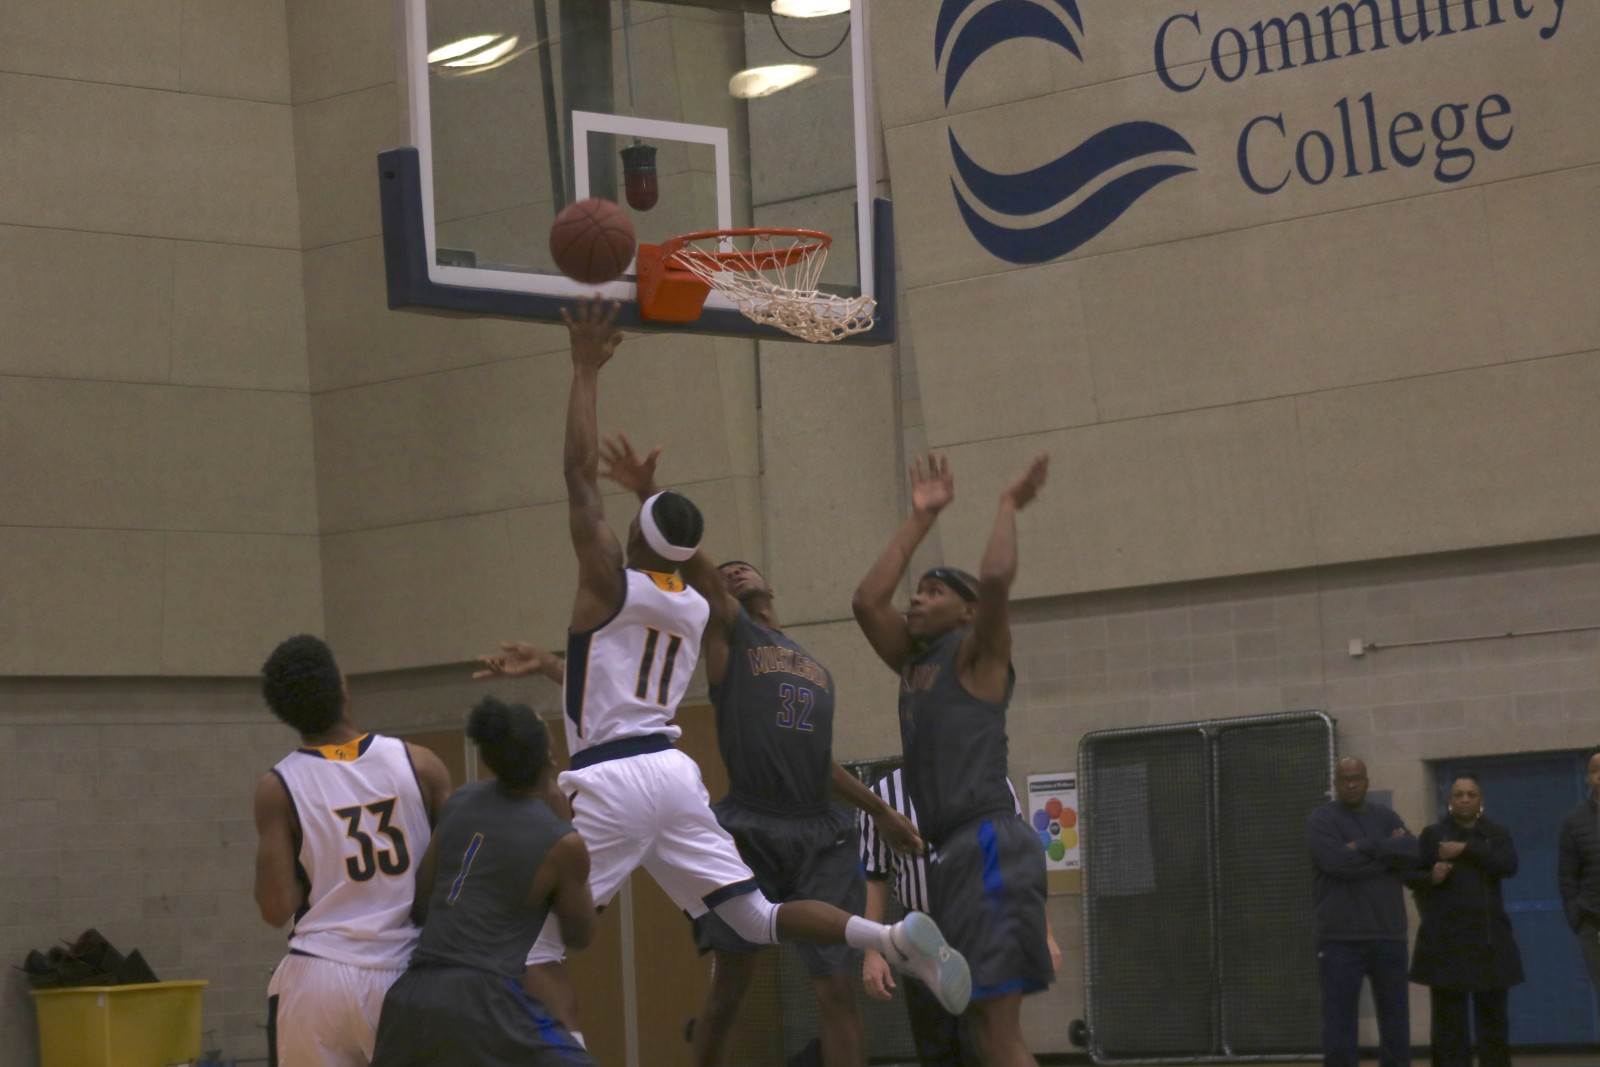 Freshman Guard, #11, Darron Ewing Jr. shoots the contested layup for GRCC.